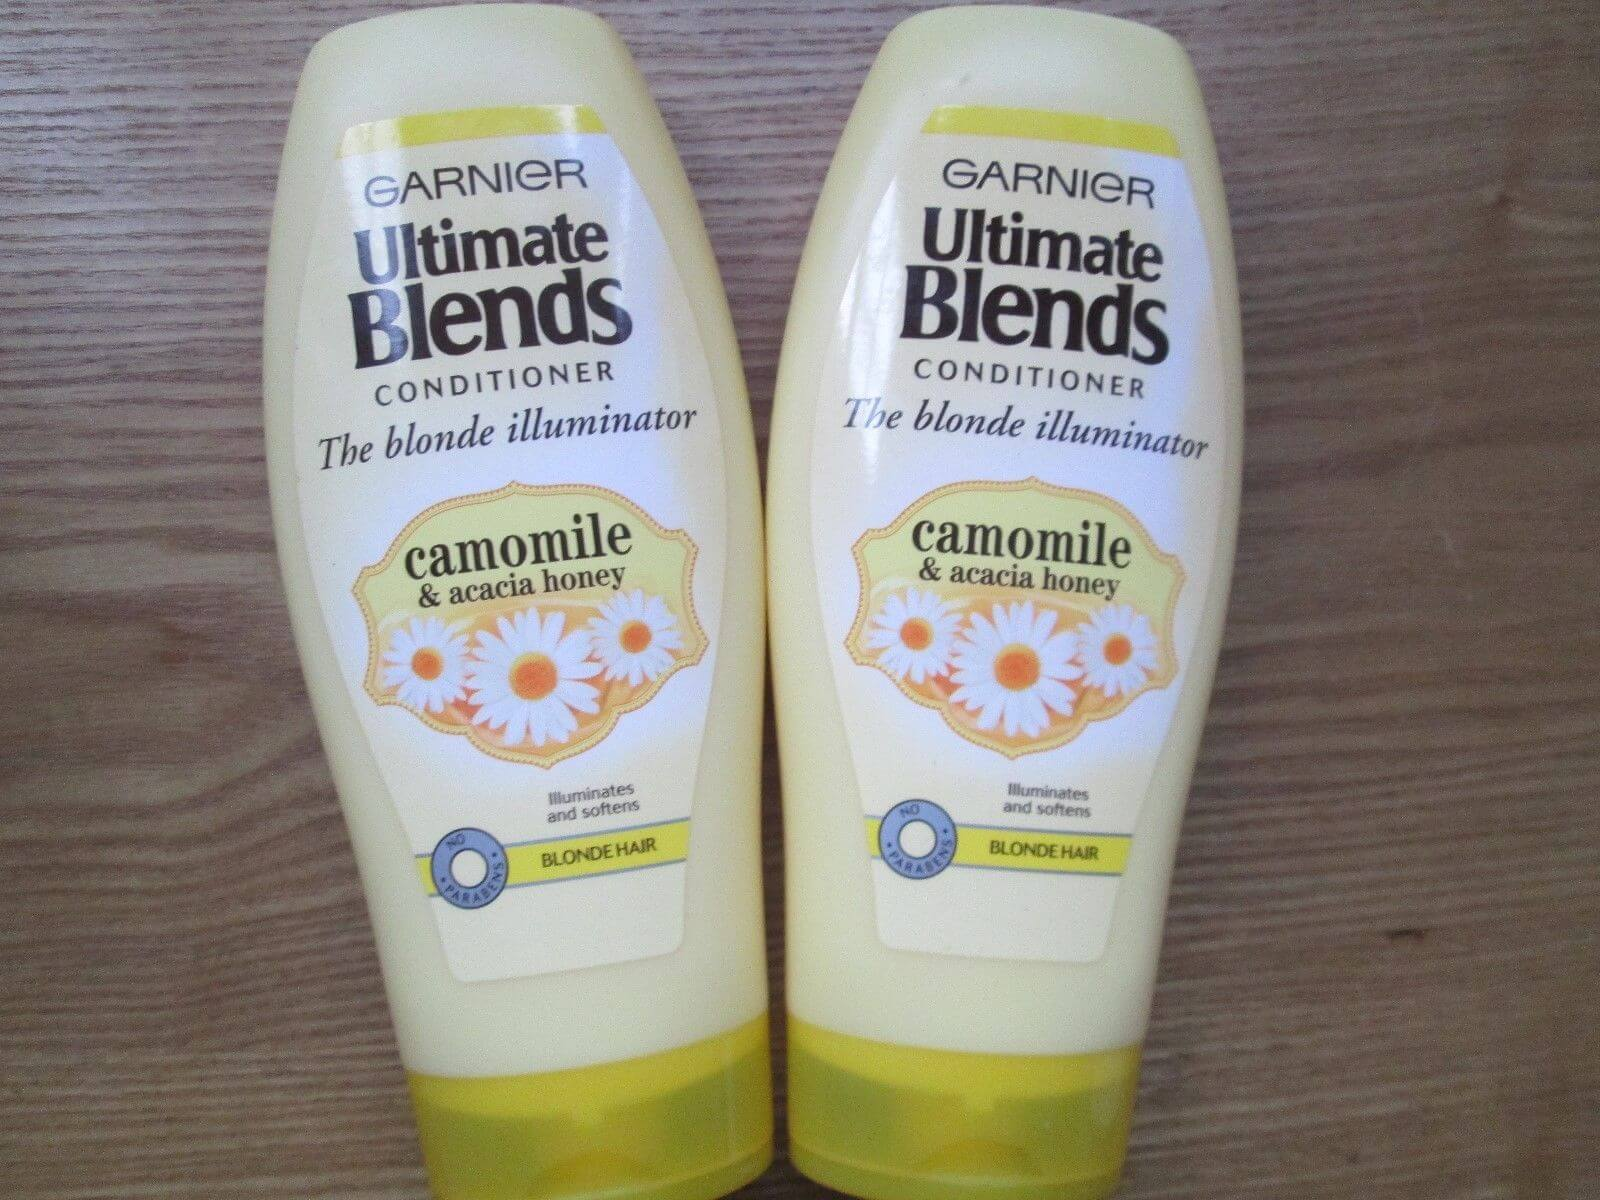 dau-xa-garnier-hair-ultimate-blends-the-blonde-illuminator-conditioner-02